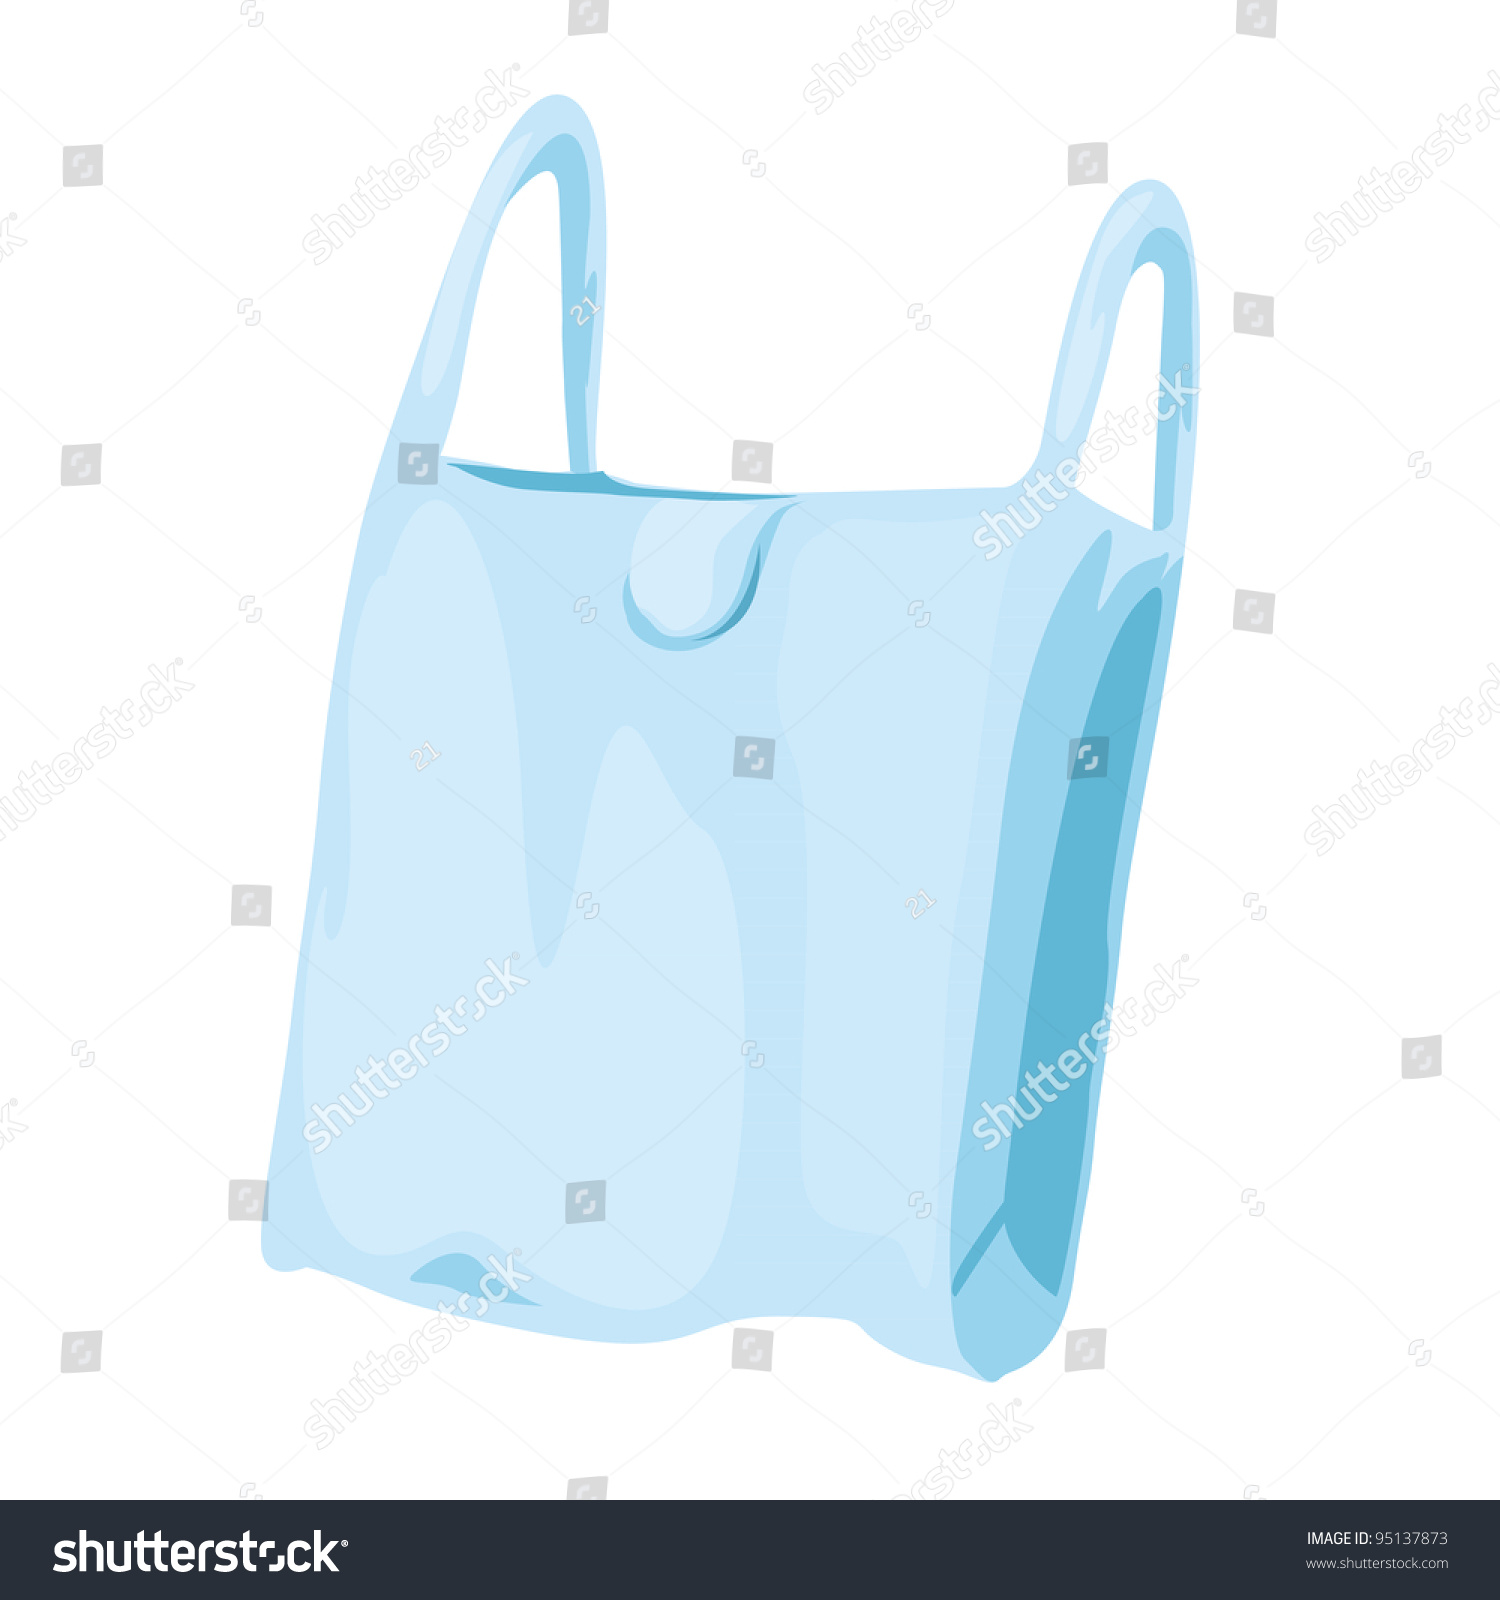 Illustration Plastic Bags Stock Vector 95137873 - Shutterstock